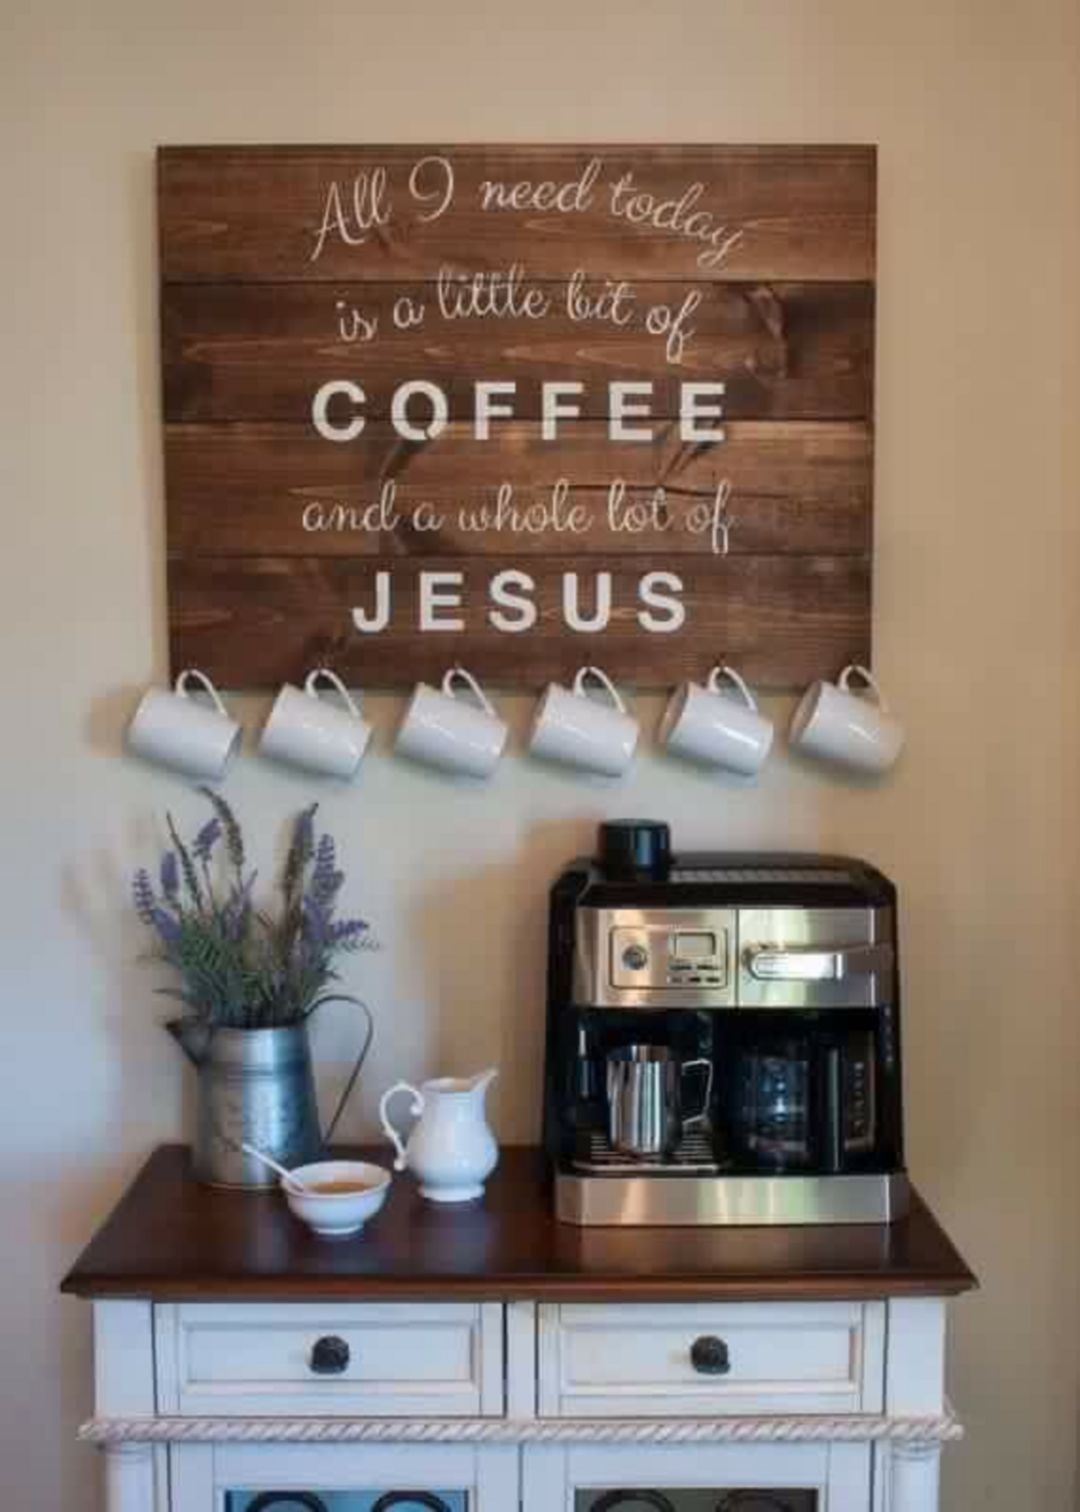 43+ Awesome Coffee Themed Kitchen Decorations Ideas | New ... on cafe kitchen layout, cafe style tables, bistro kitchen, cafe decor ideas, cafe inspired kitchen, cafe style kitchen, tropical style kitchen, cafe kitchen rugs, cafe kitchen decor, farm-themed kitchen, cafe kitchen art, coffee cafe kitchen, cafe kitchen cabinets, cafe doors for kitchen, french cafe kitchen, cafe legs, coffee for home decorations kitchen, cafe au lait valance, cafe kitchen decorating ideas,